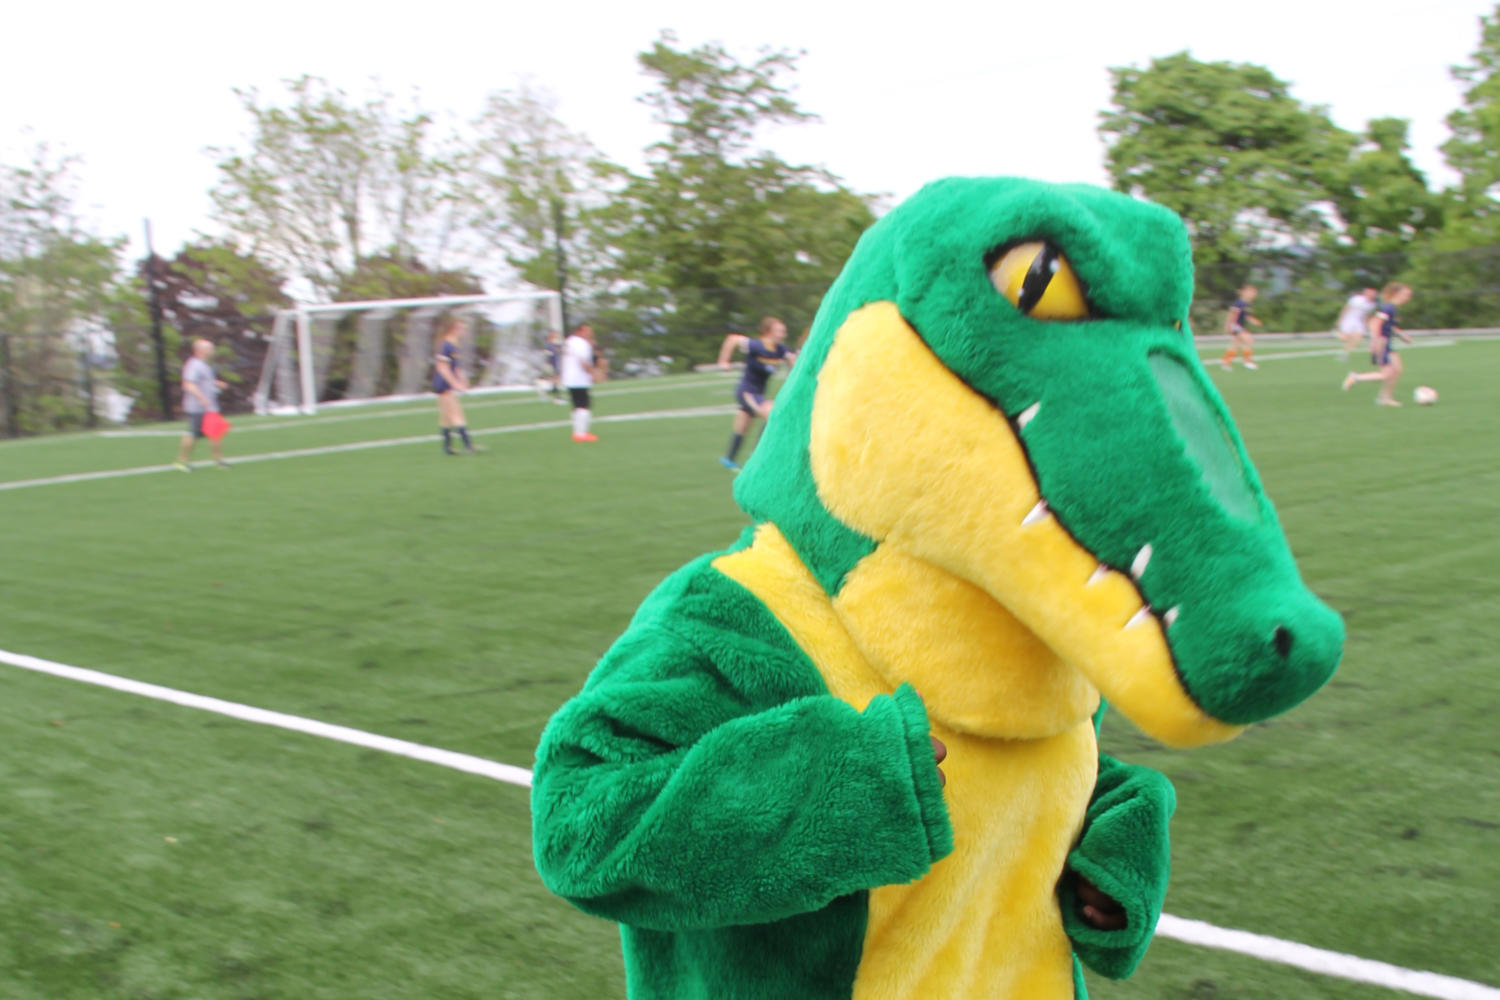 %22Chomp%2C%22+the+Annie+Wright+Schools+gator+mascot%2C+celebrated+the+opening+of+the+field+yesterday+with+a+faculty+and+students.